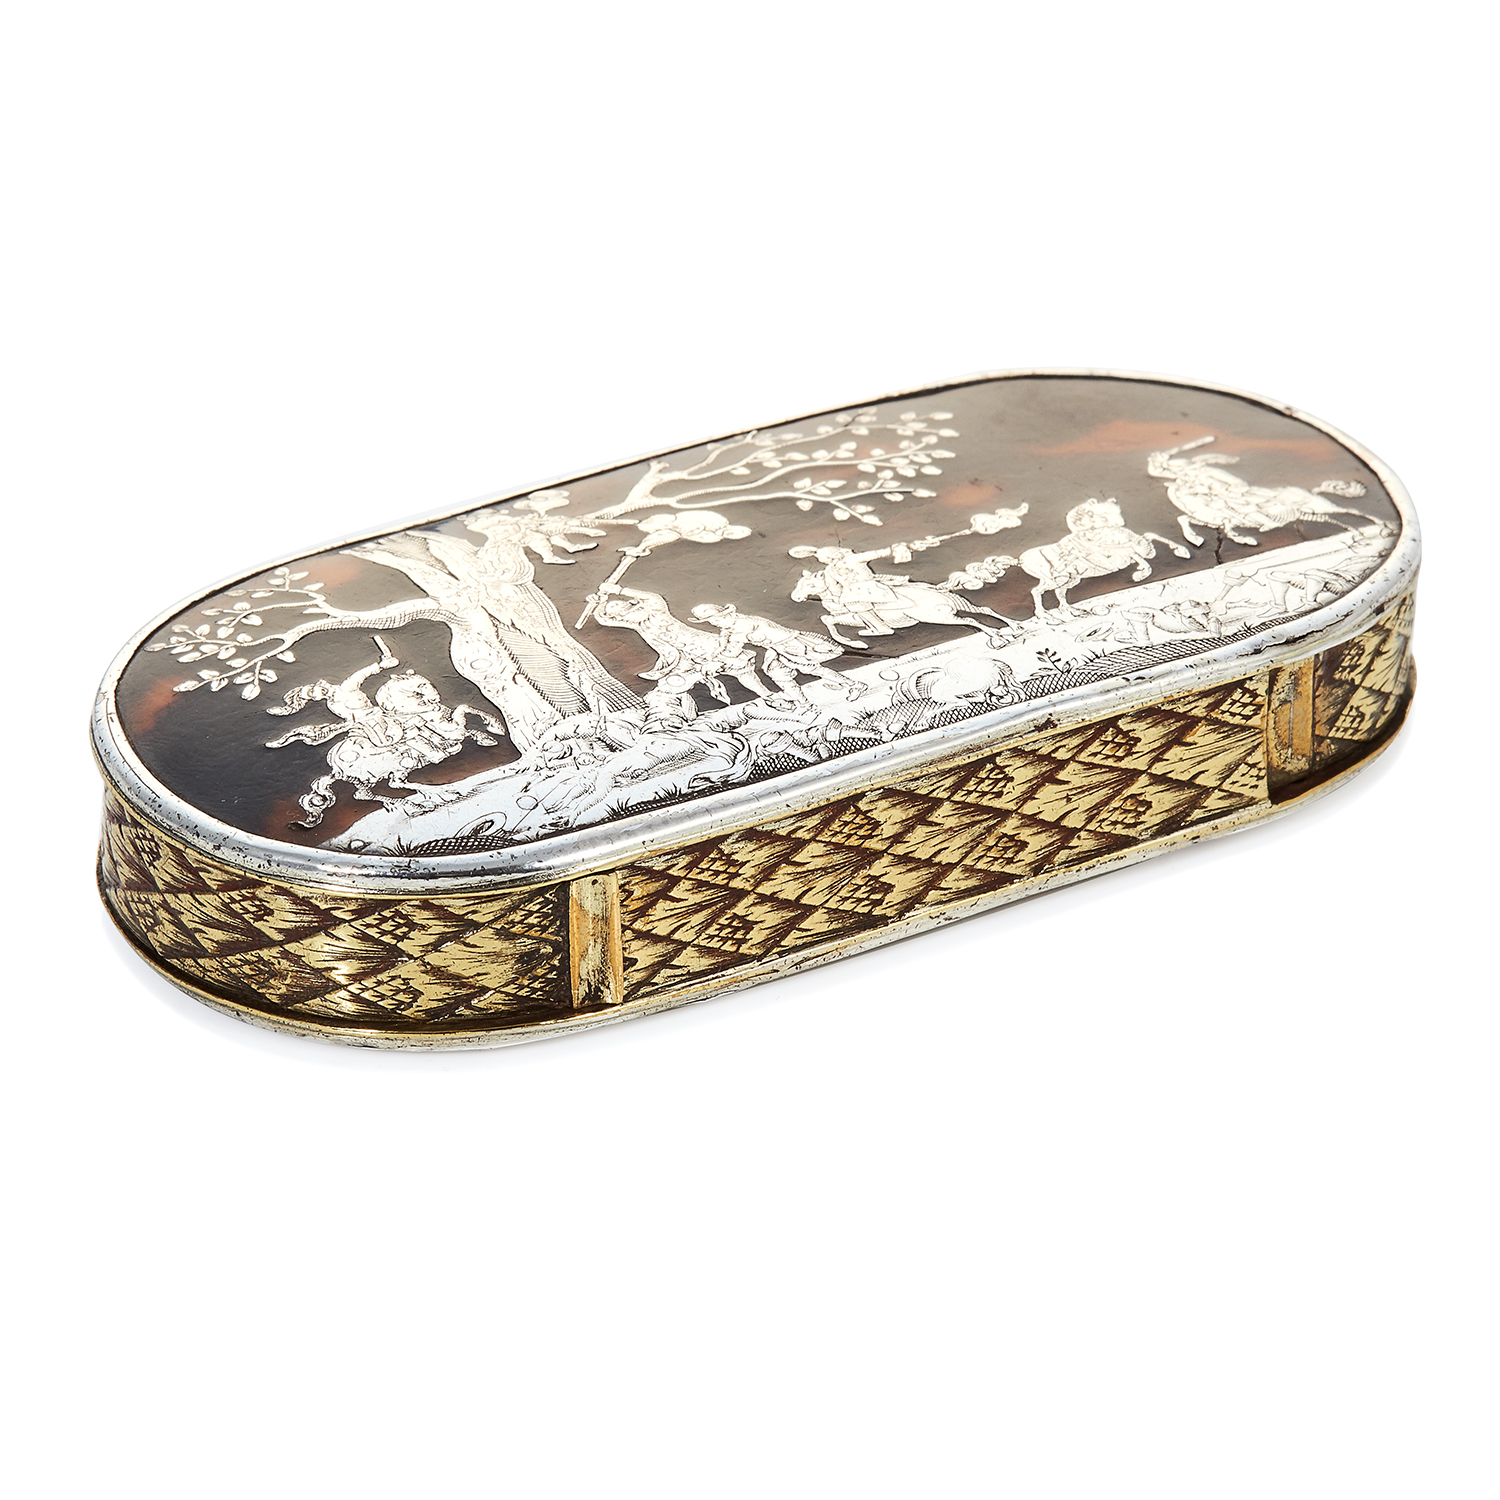 AN ANTIQUE TORTOISESHELL SNUFF BOX, 19TH CENTURY in silver, the oval body with tortoiseshell lid and